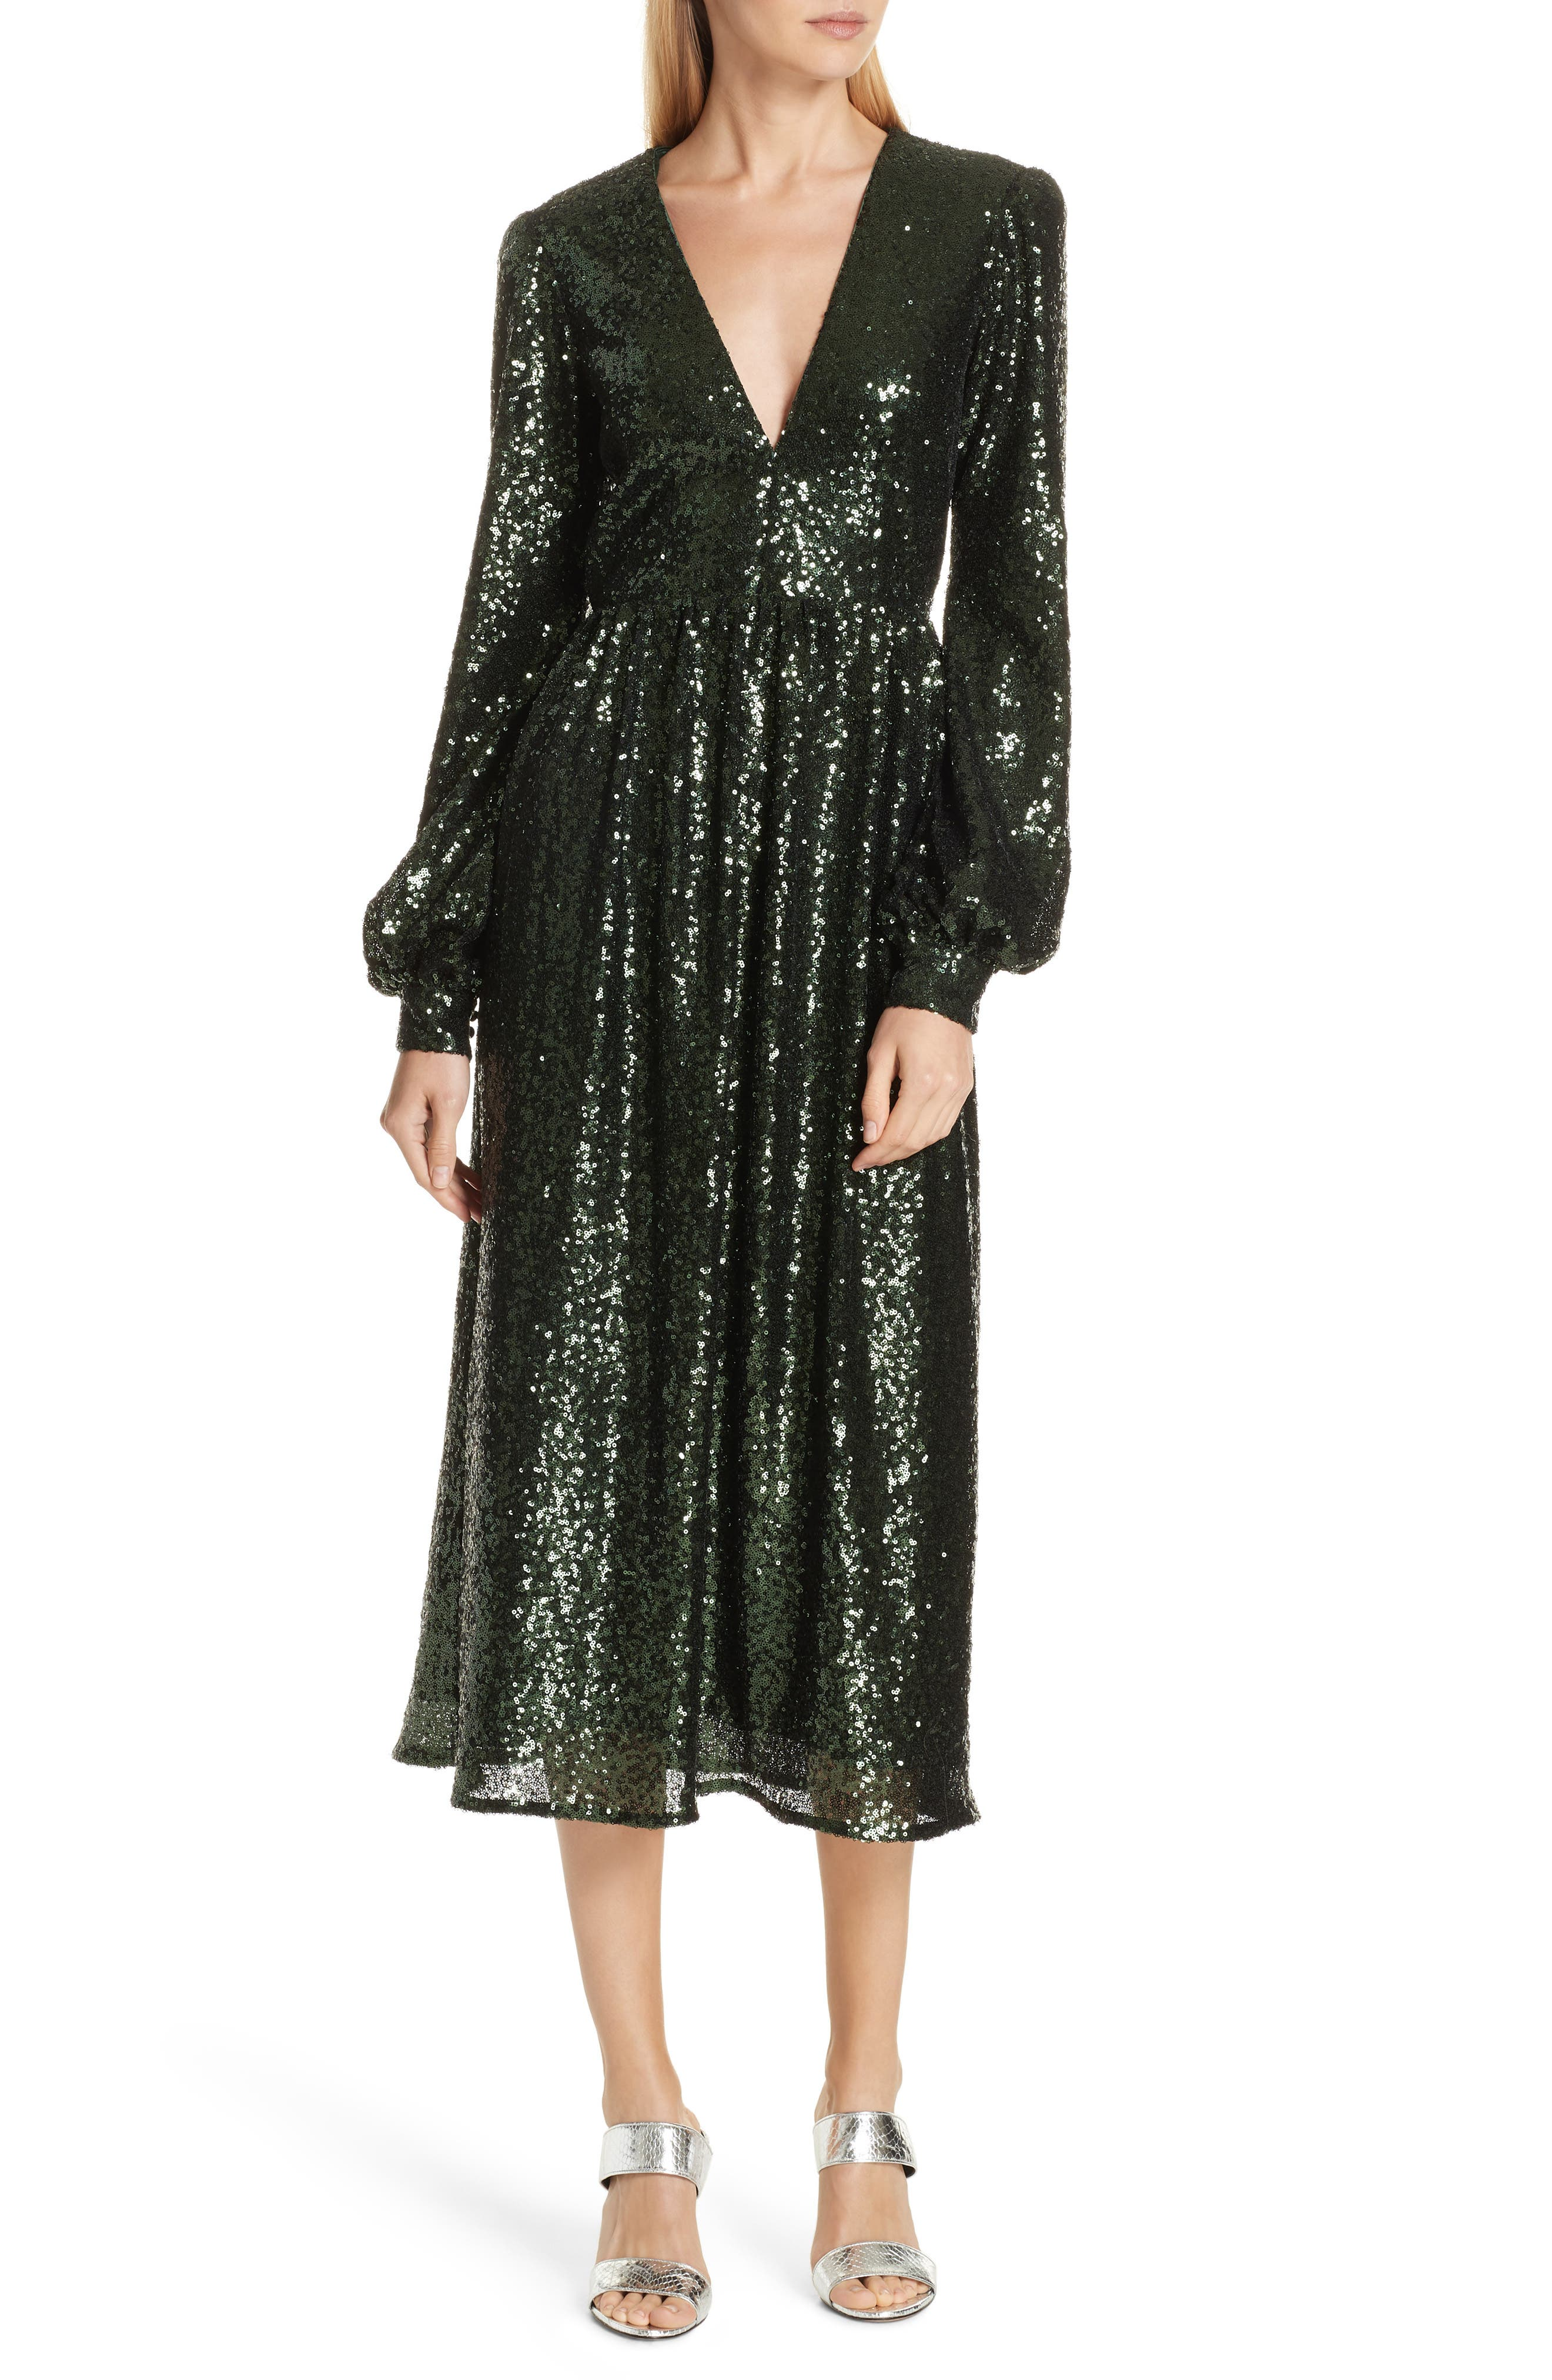 70s Prom, Formal, Evening, Party Dresses Womens Saloni Camille Sequin Midi Dress Size 0 - Green $725.00 AT vintagedancer.com